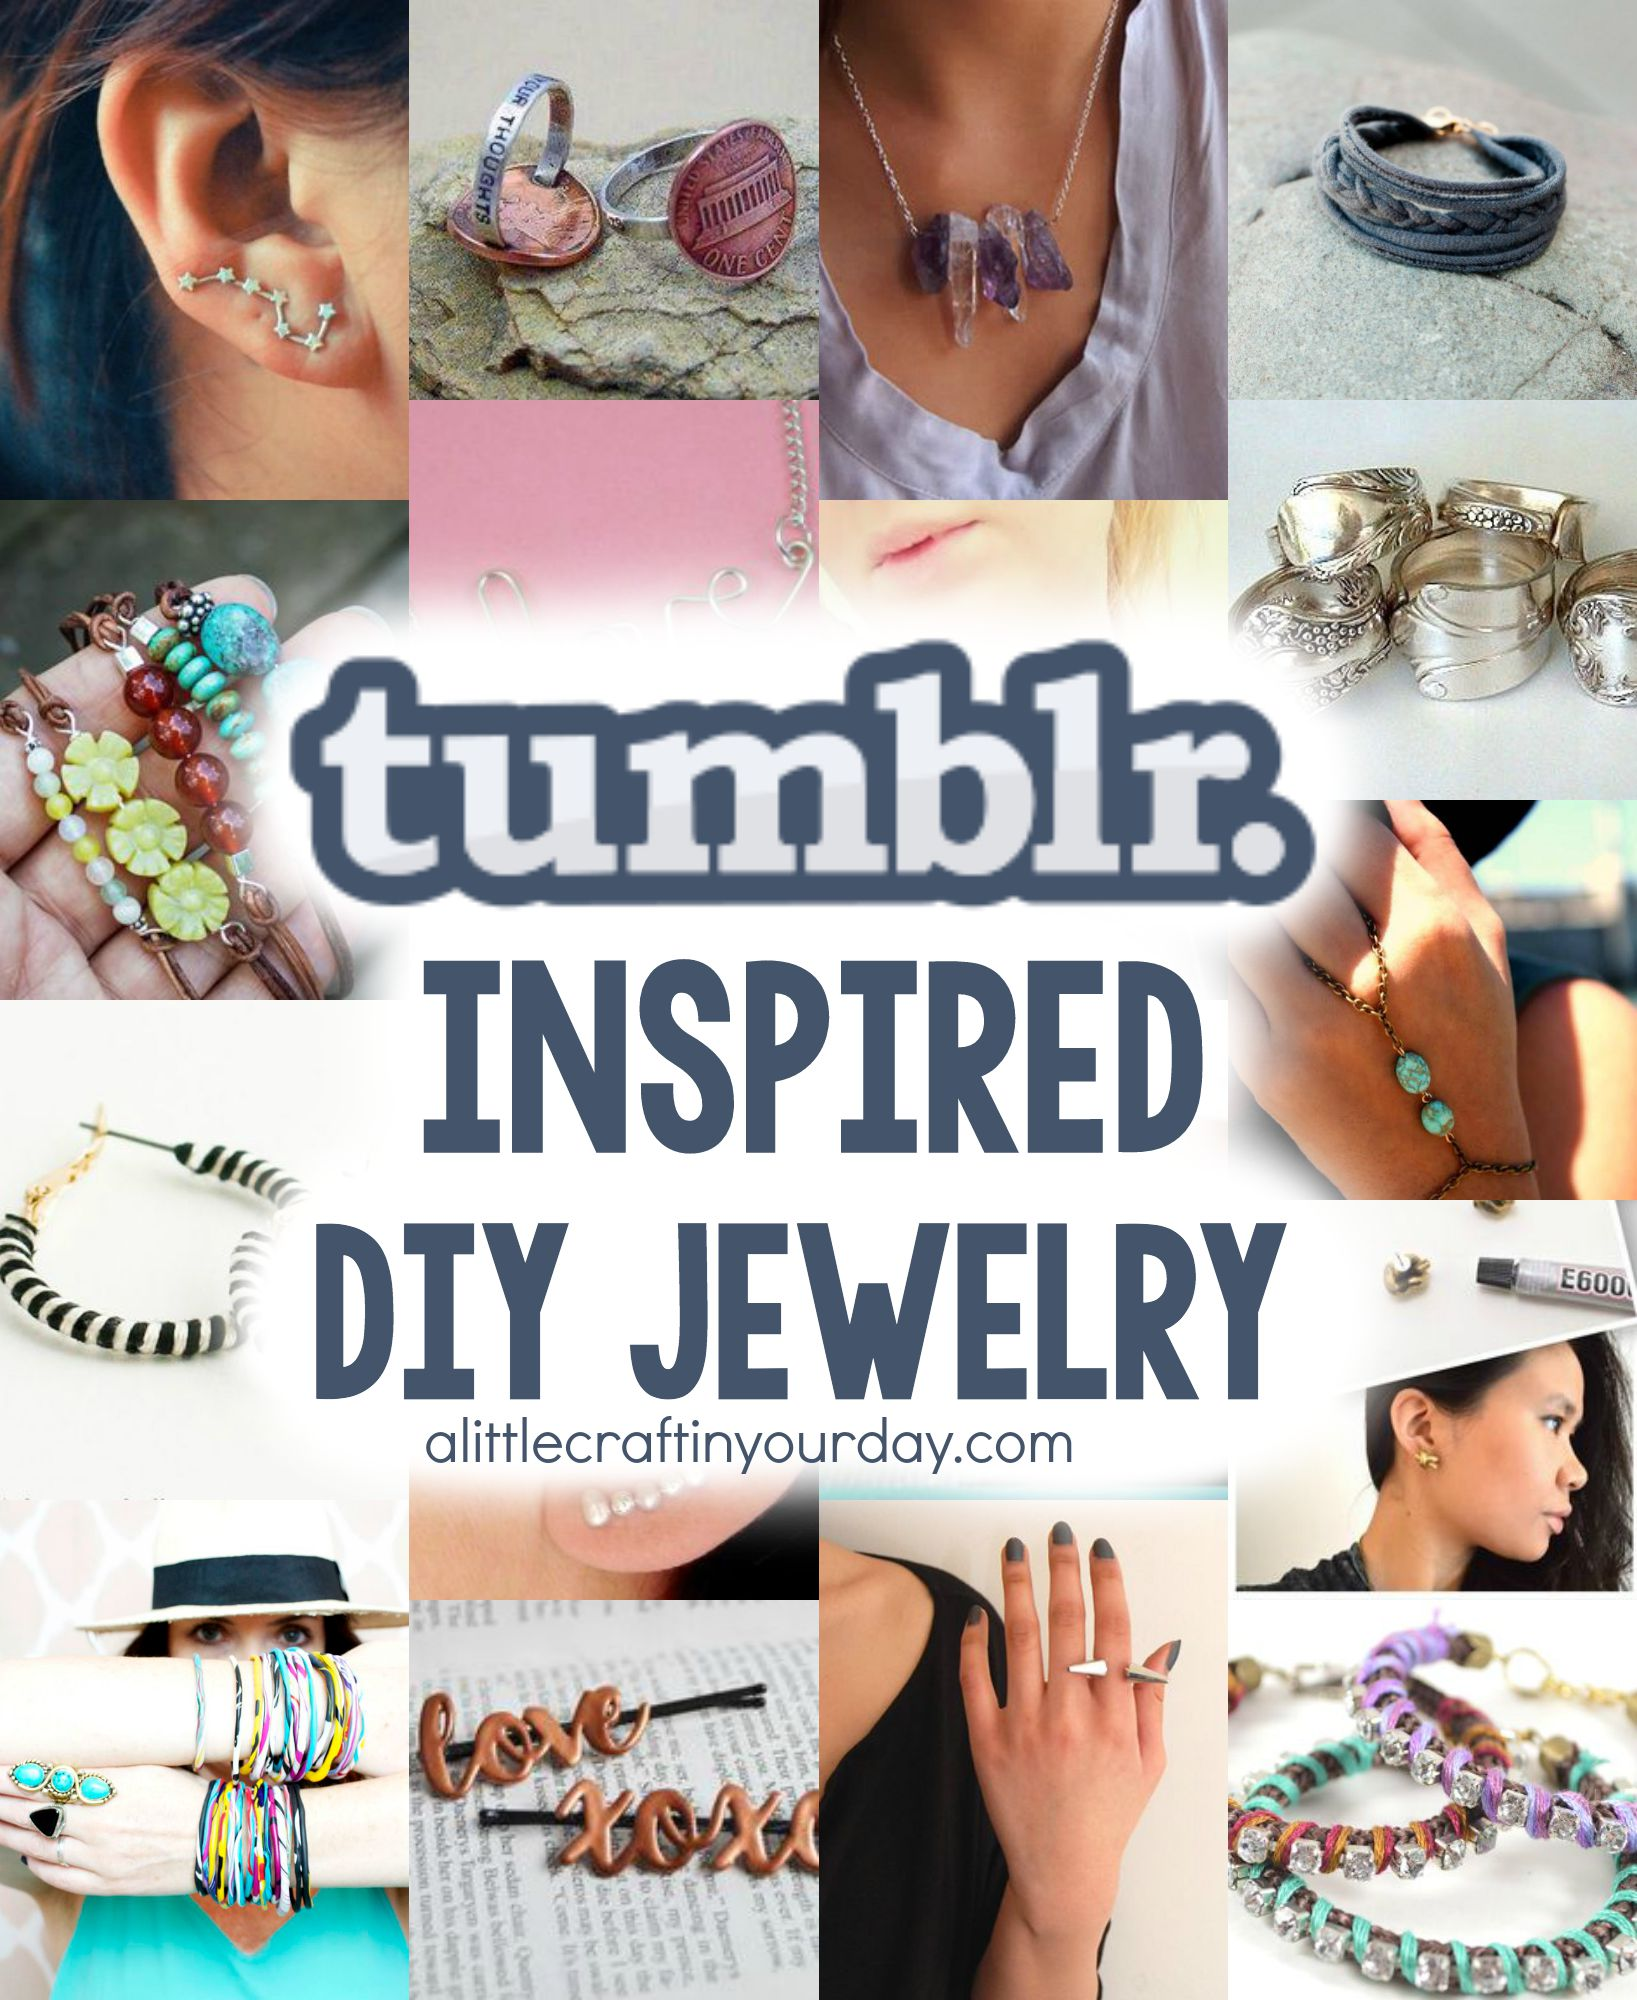 Tumblr Inspired DIY Jewelry - A Little Craft In Your Day